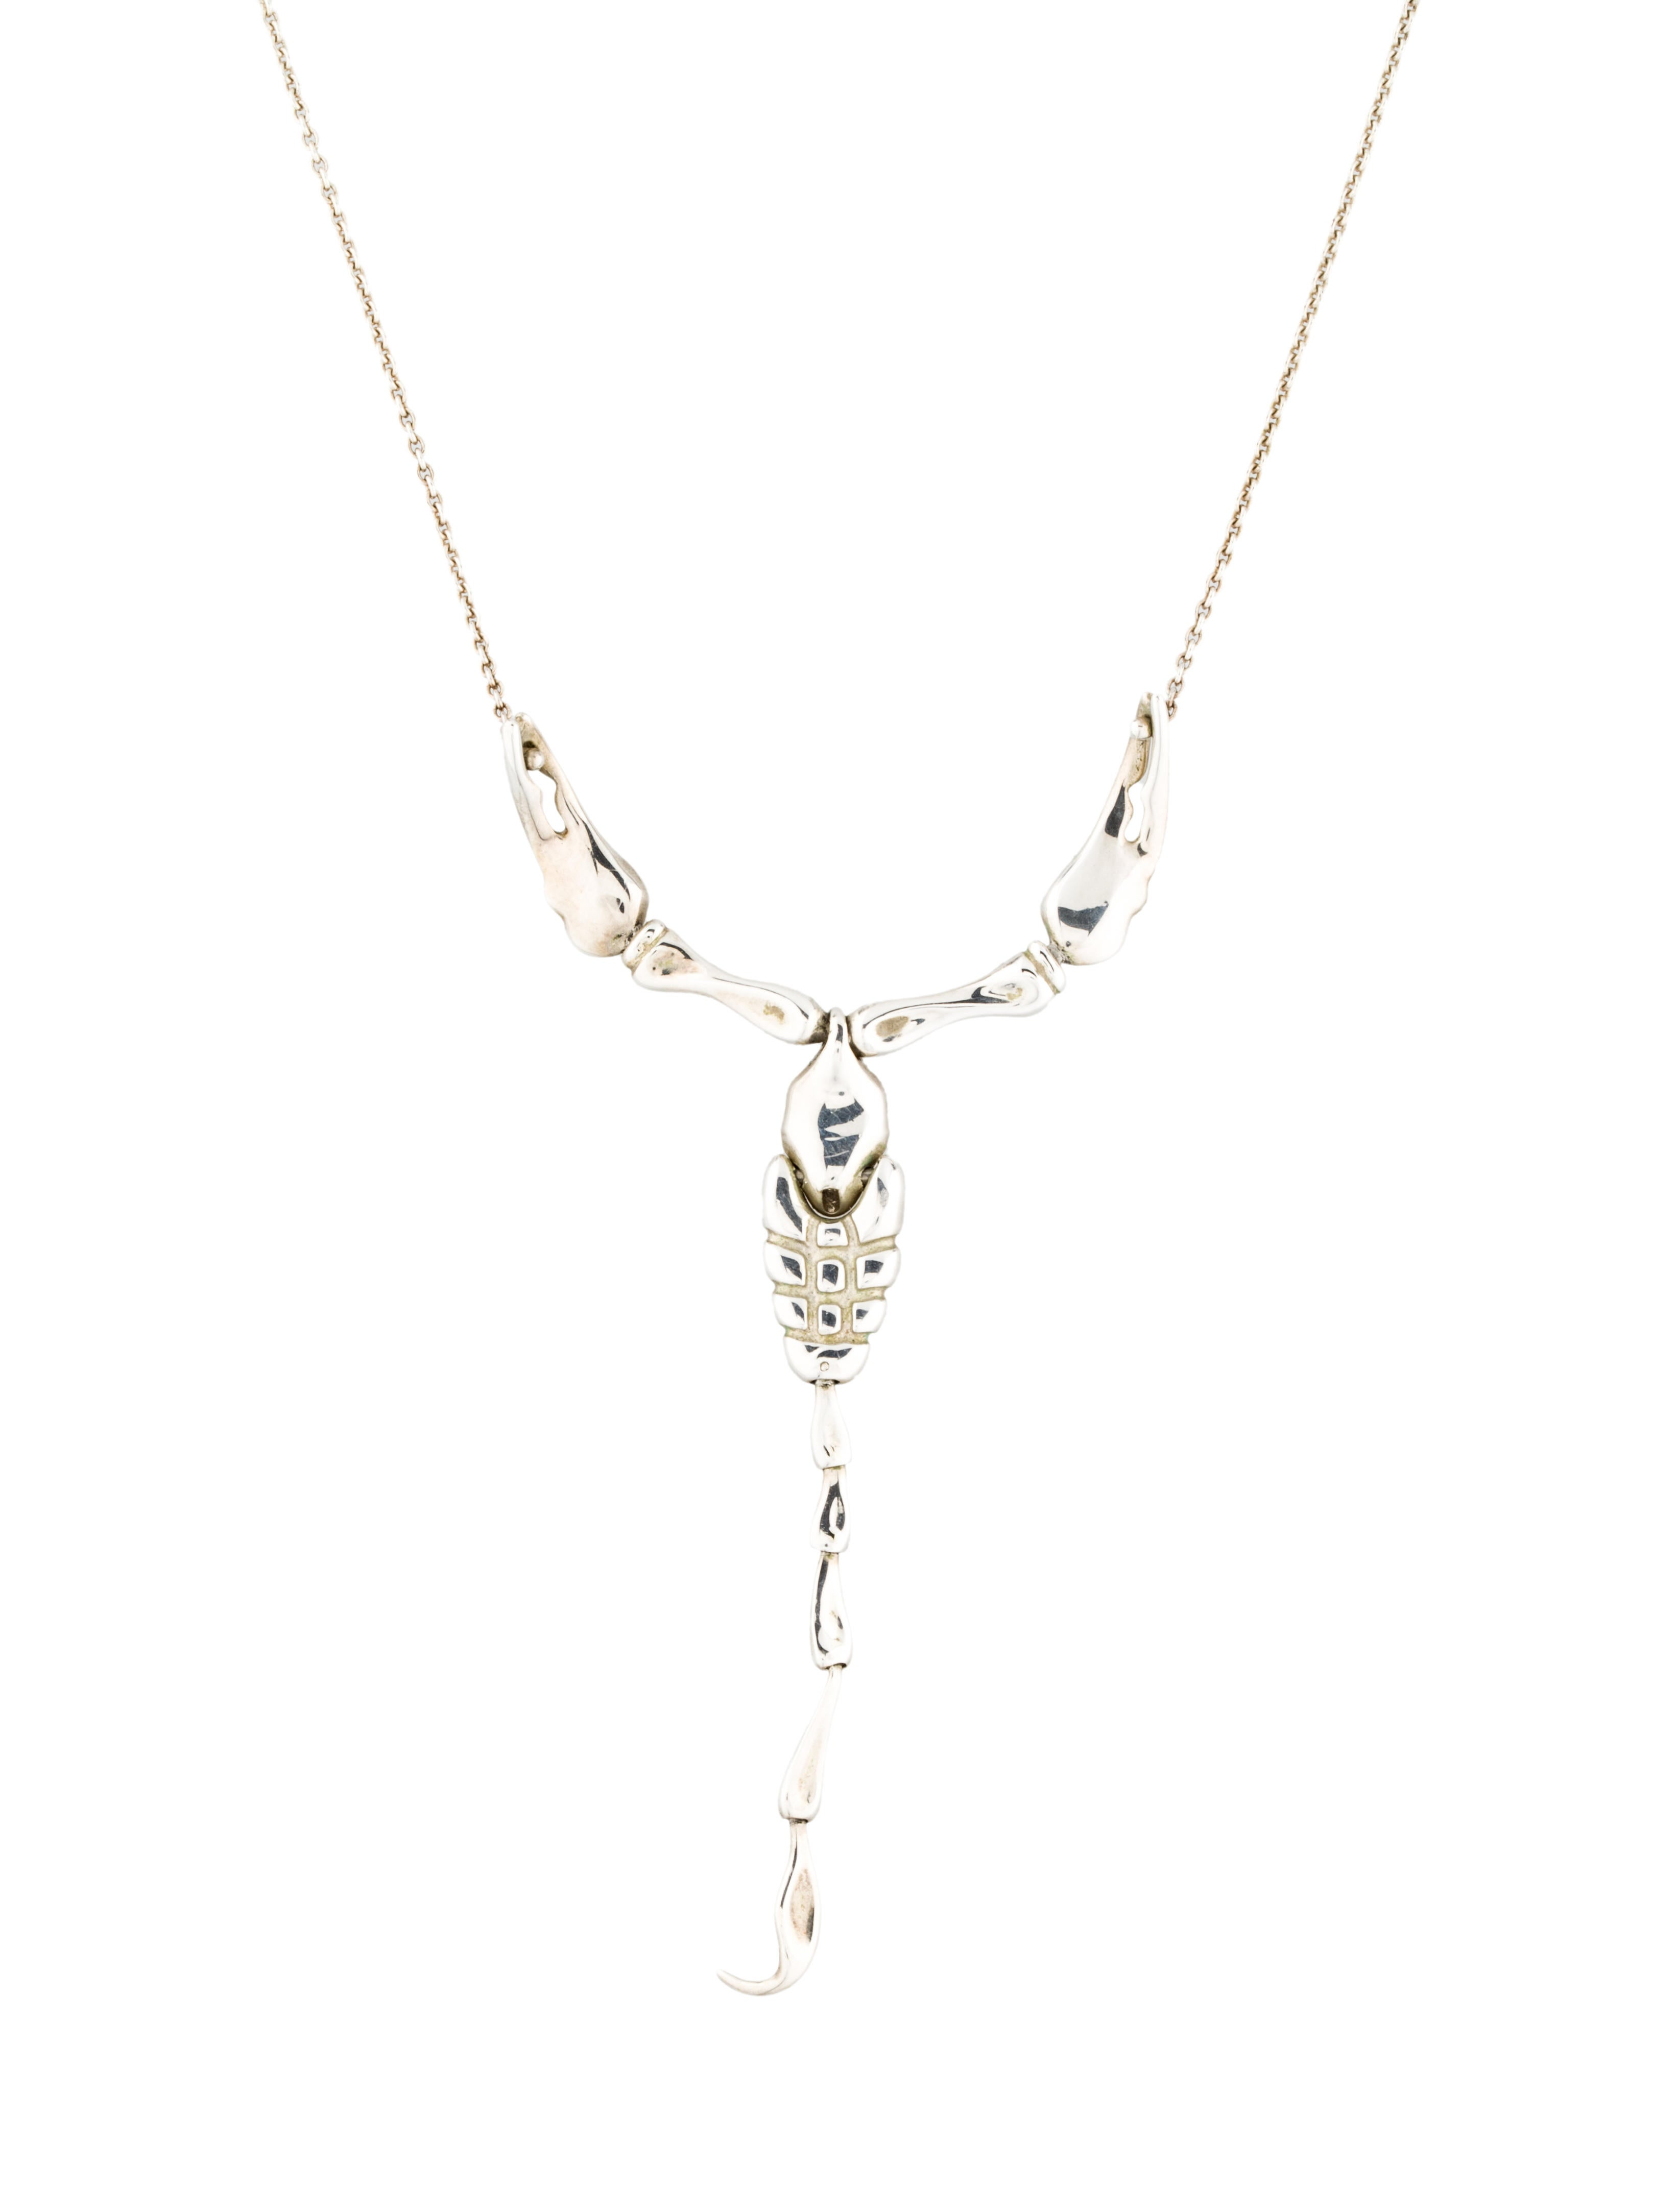 608910d0c818f Tiffany & Co. Scorpion Pendant Necklace - Necklaces - TIF37805 | The ...